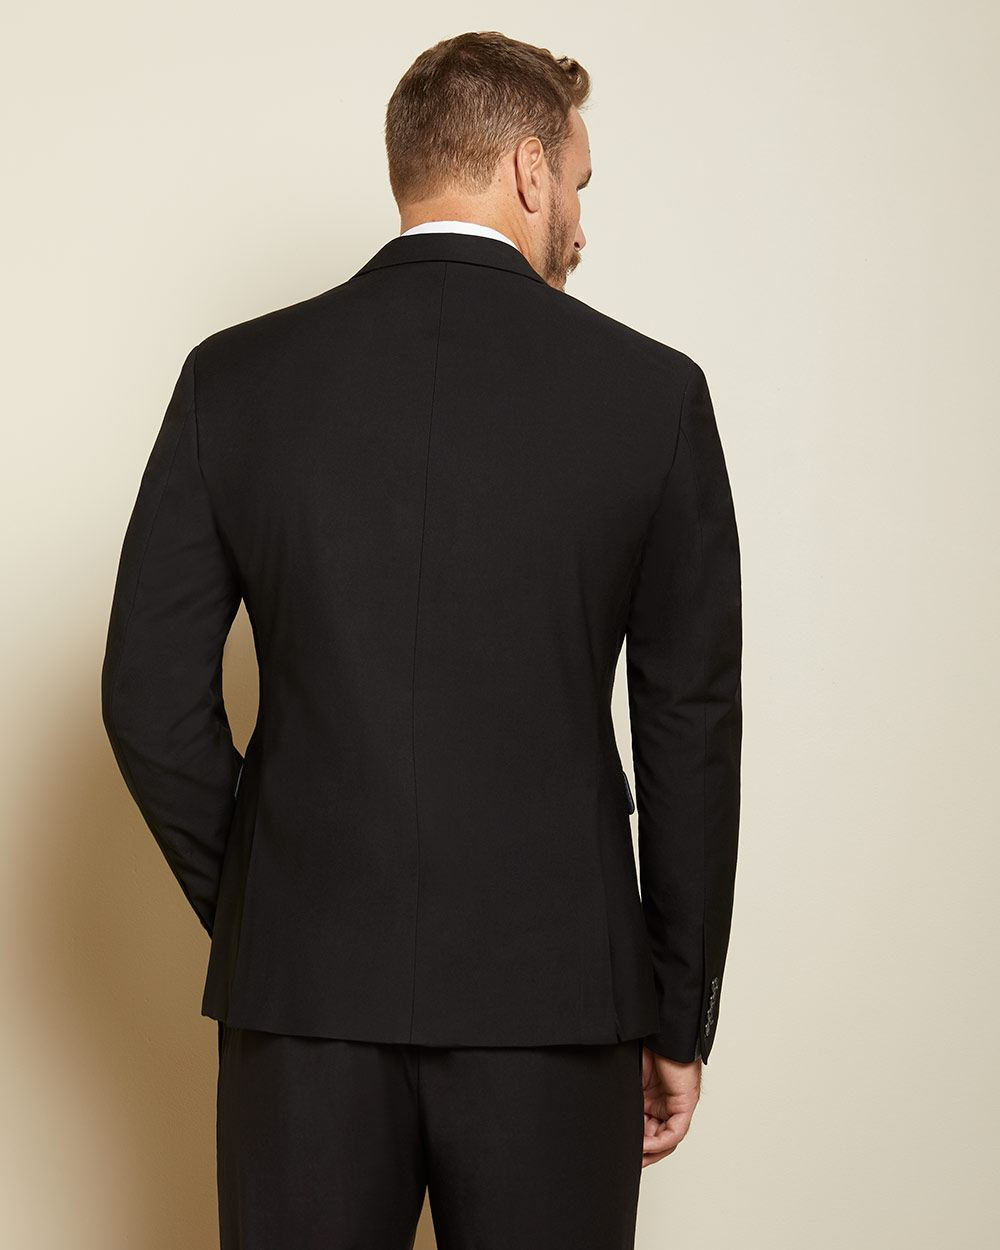 Essential Athletic Fit black wool-blend suit Blazer